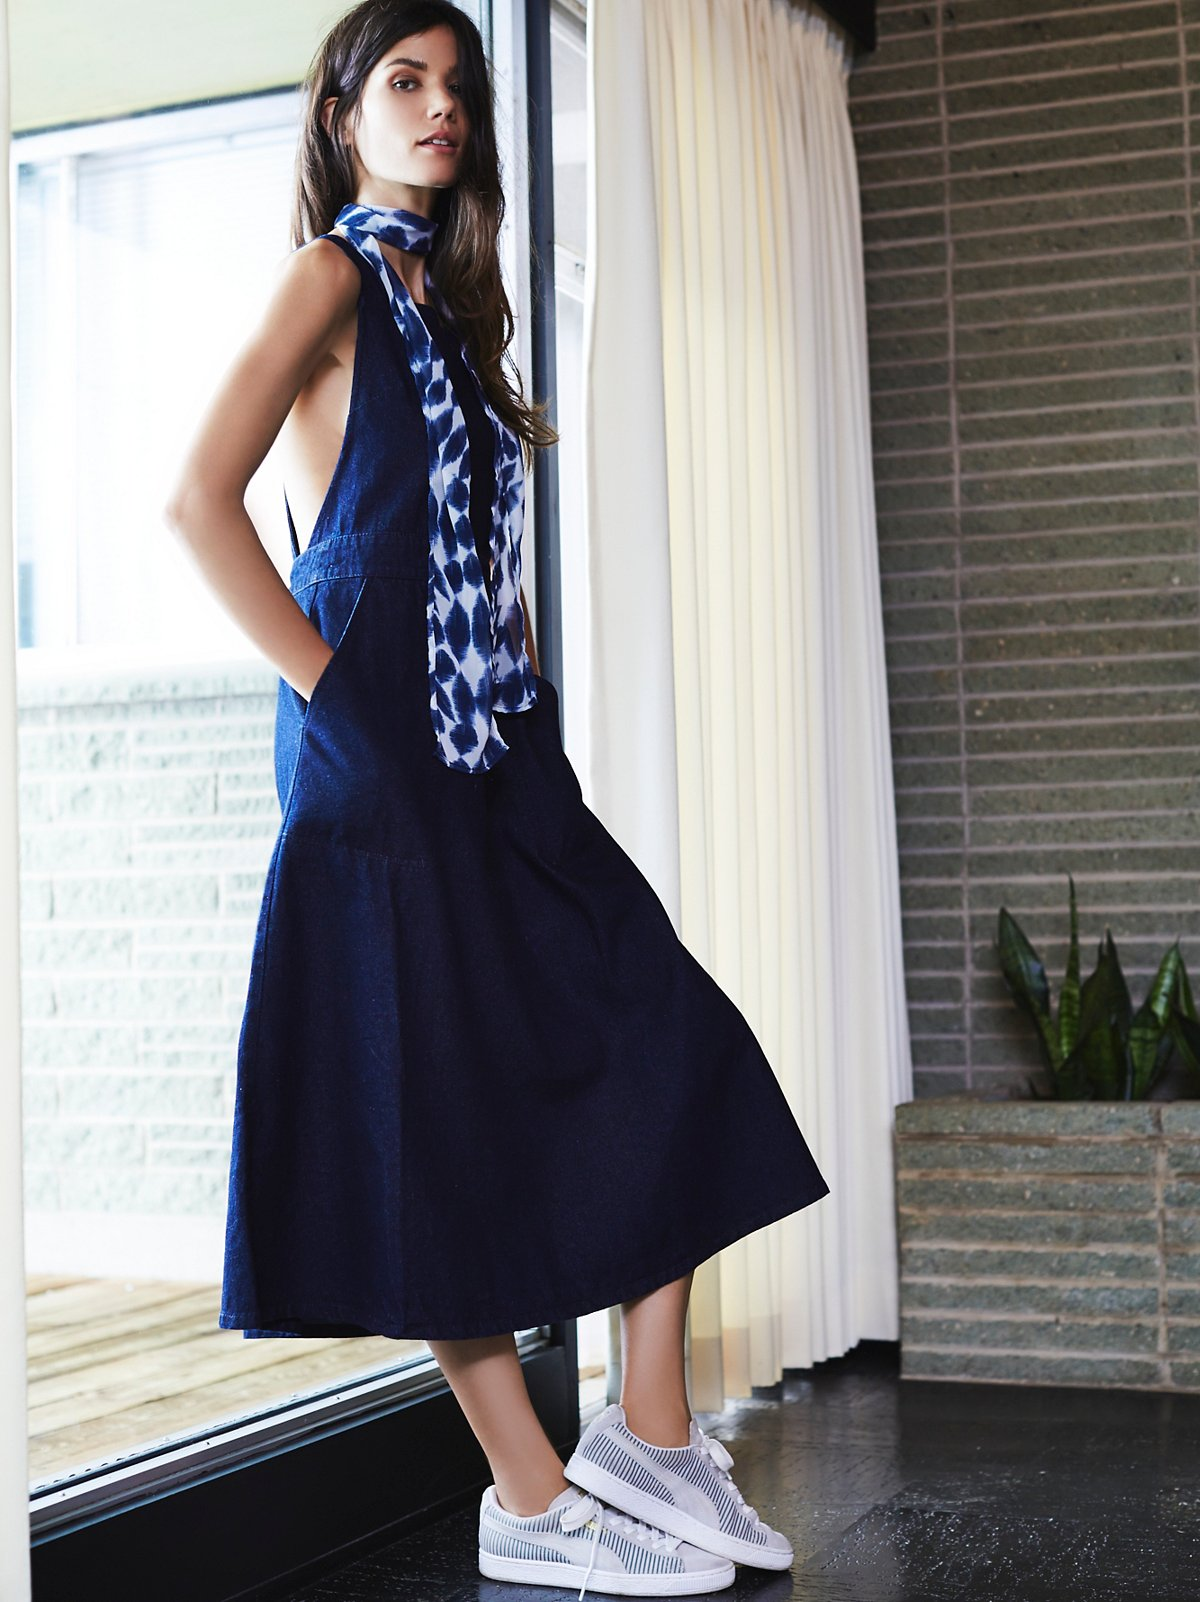 Apron dress